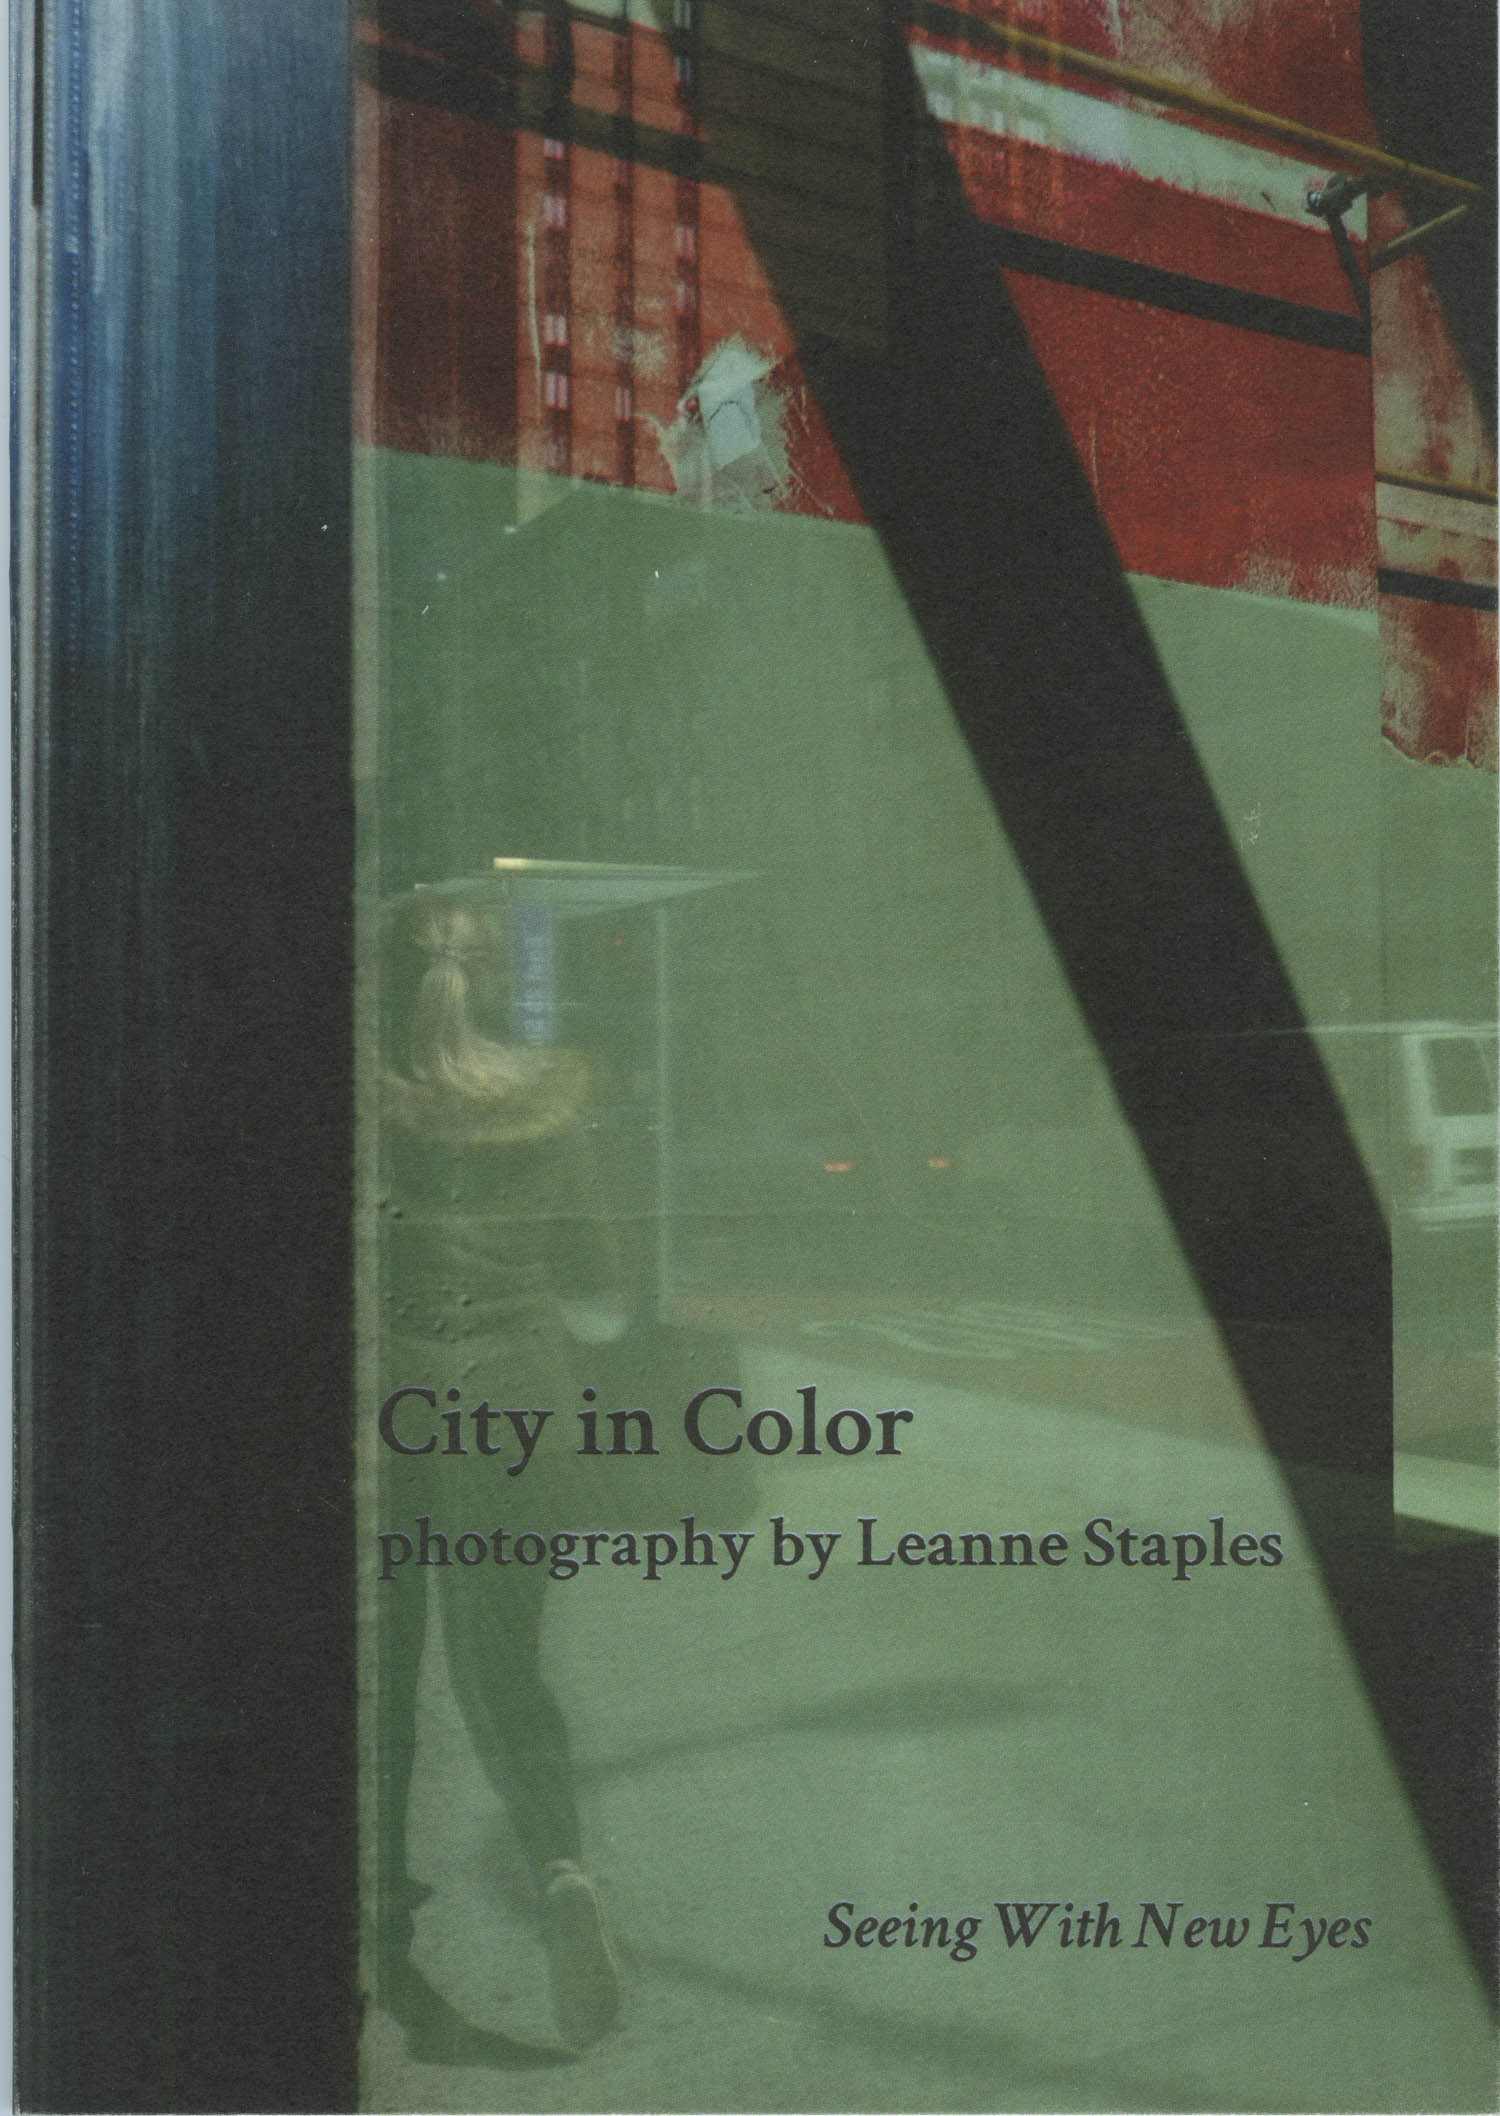 City in Color – Limited Edition Photo Zine by Leanne Staples